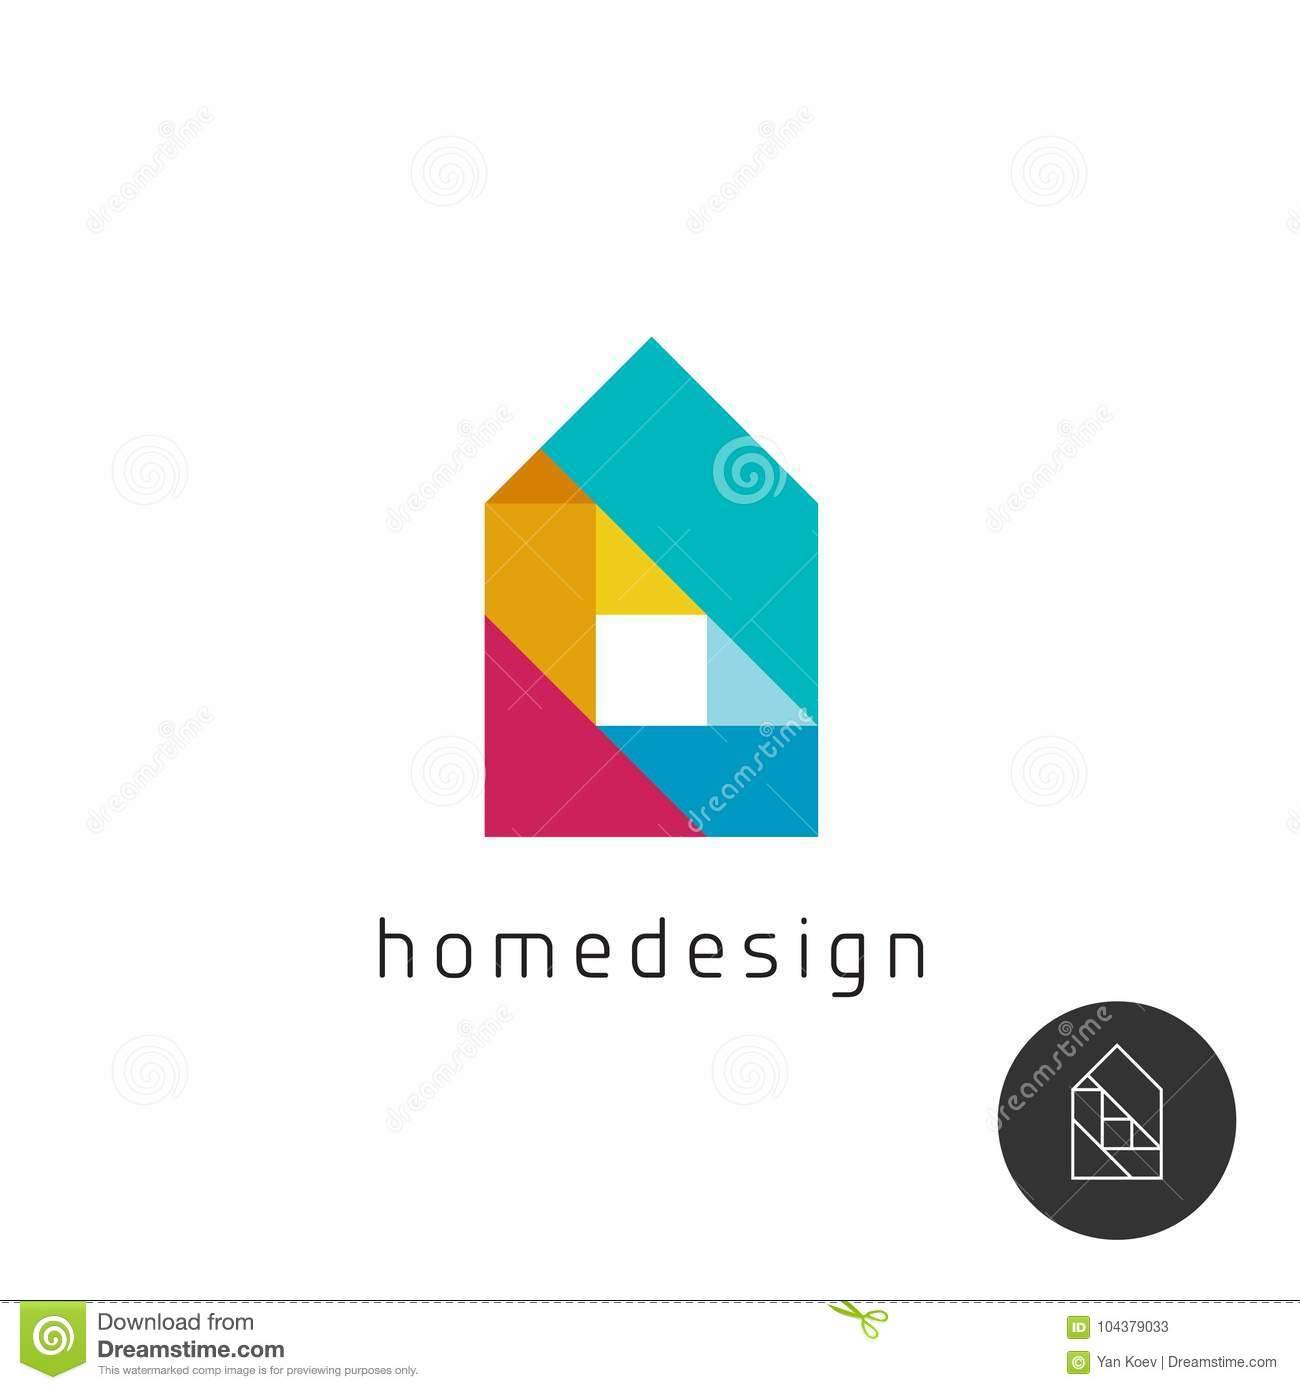 House design concept colorful rainbow geometric elements logo.